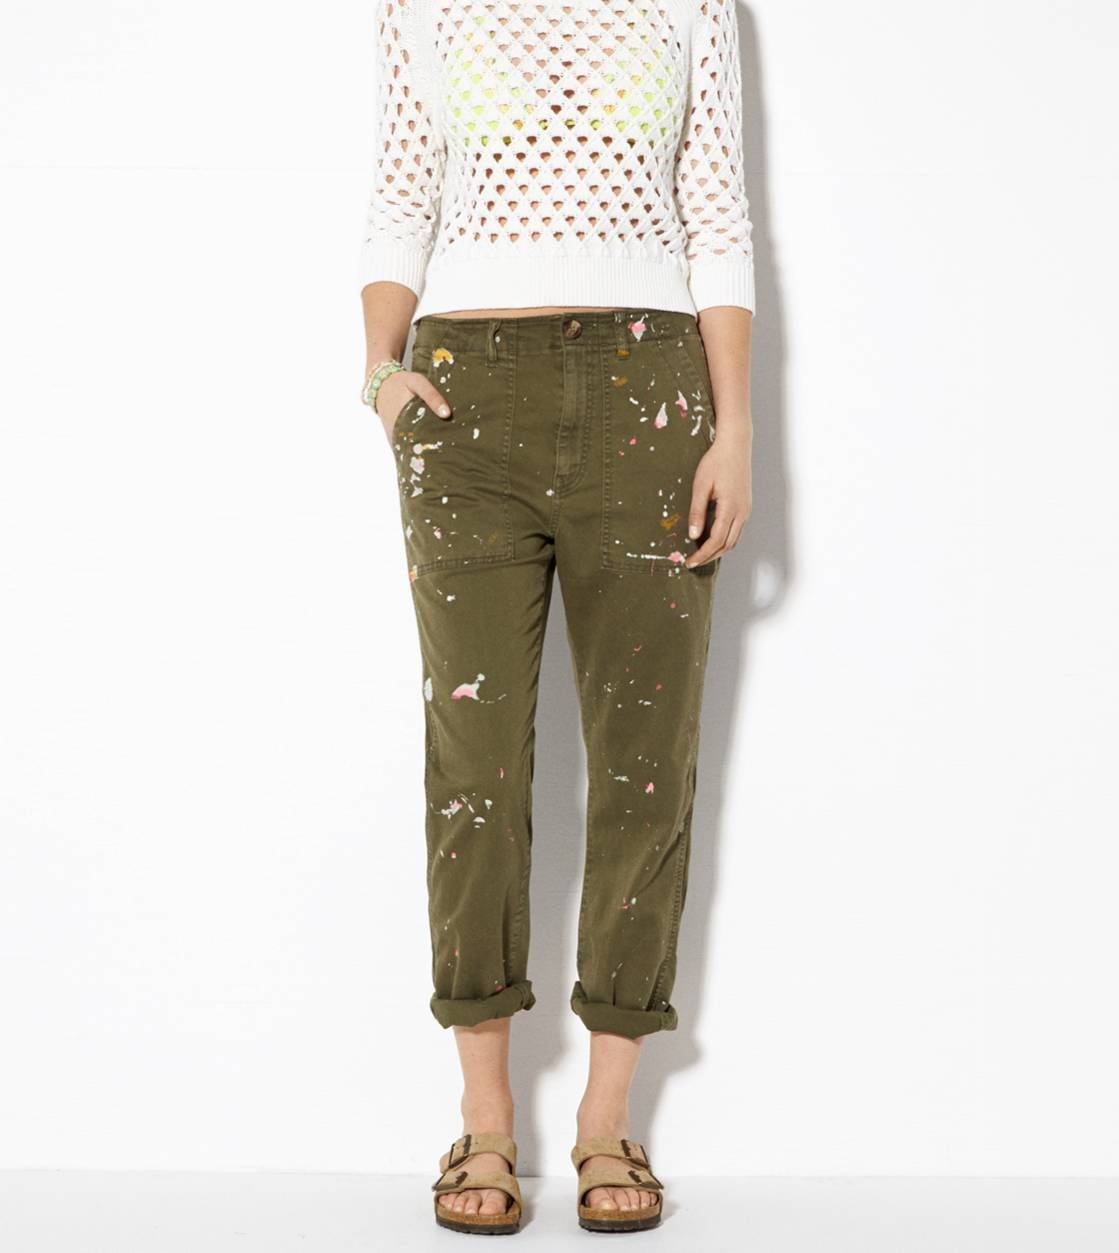 Green AE Splattered Boy Jean Crop Pant